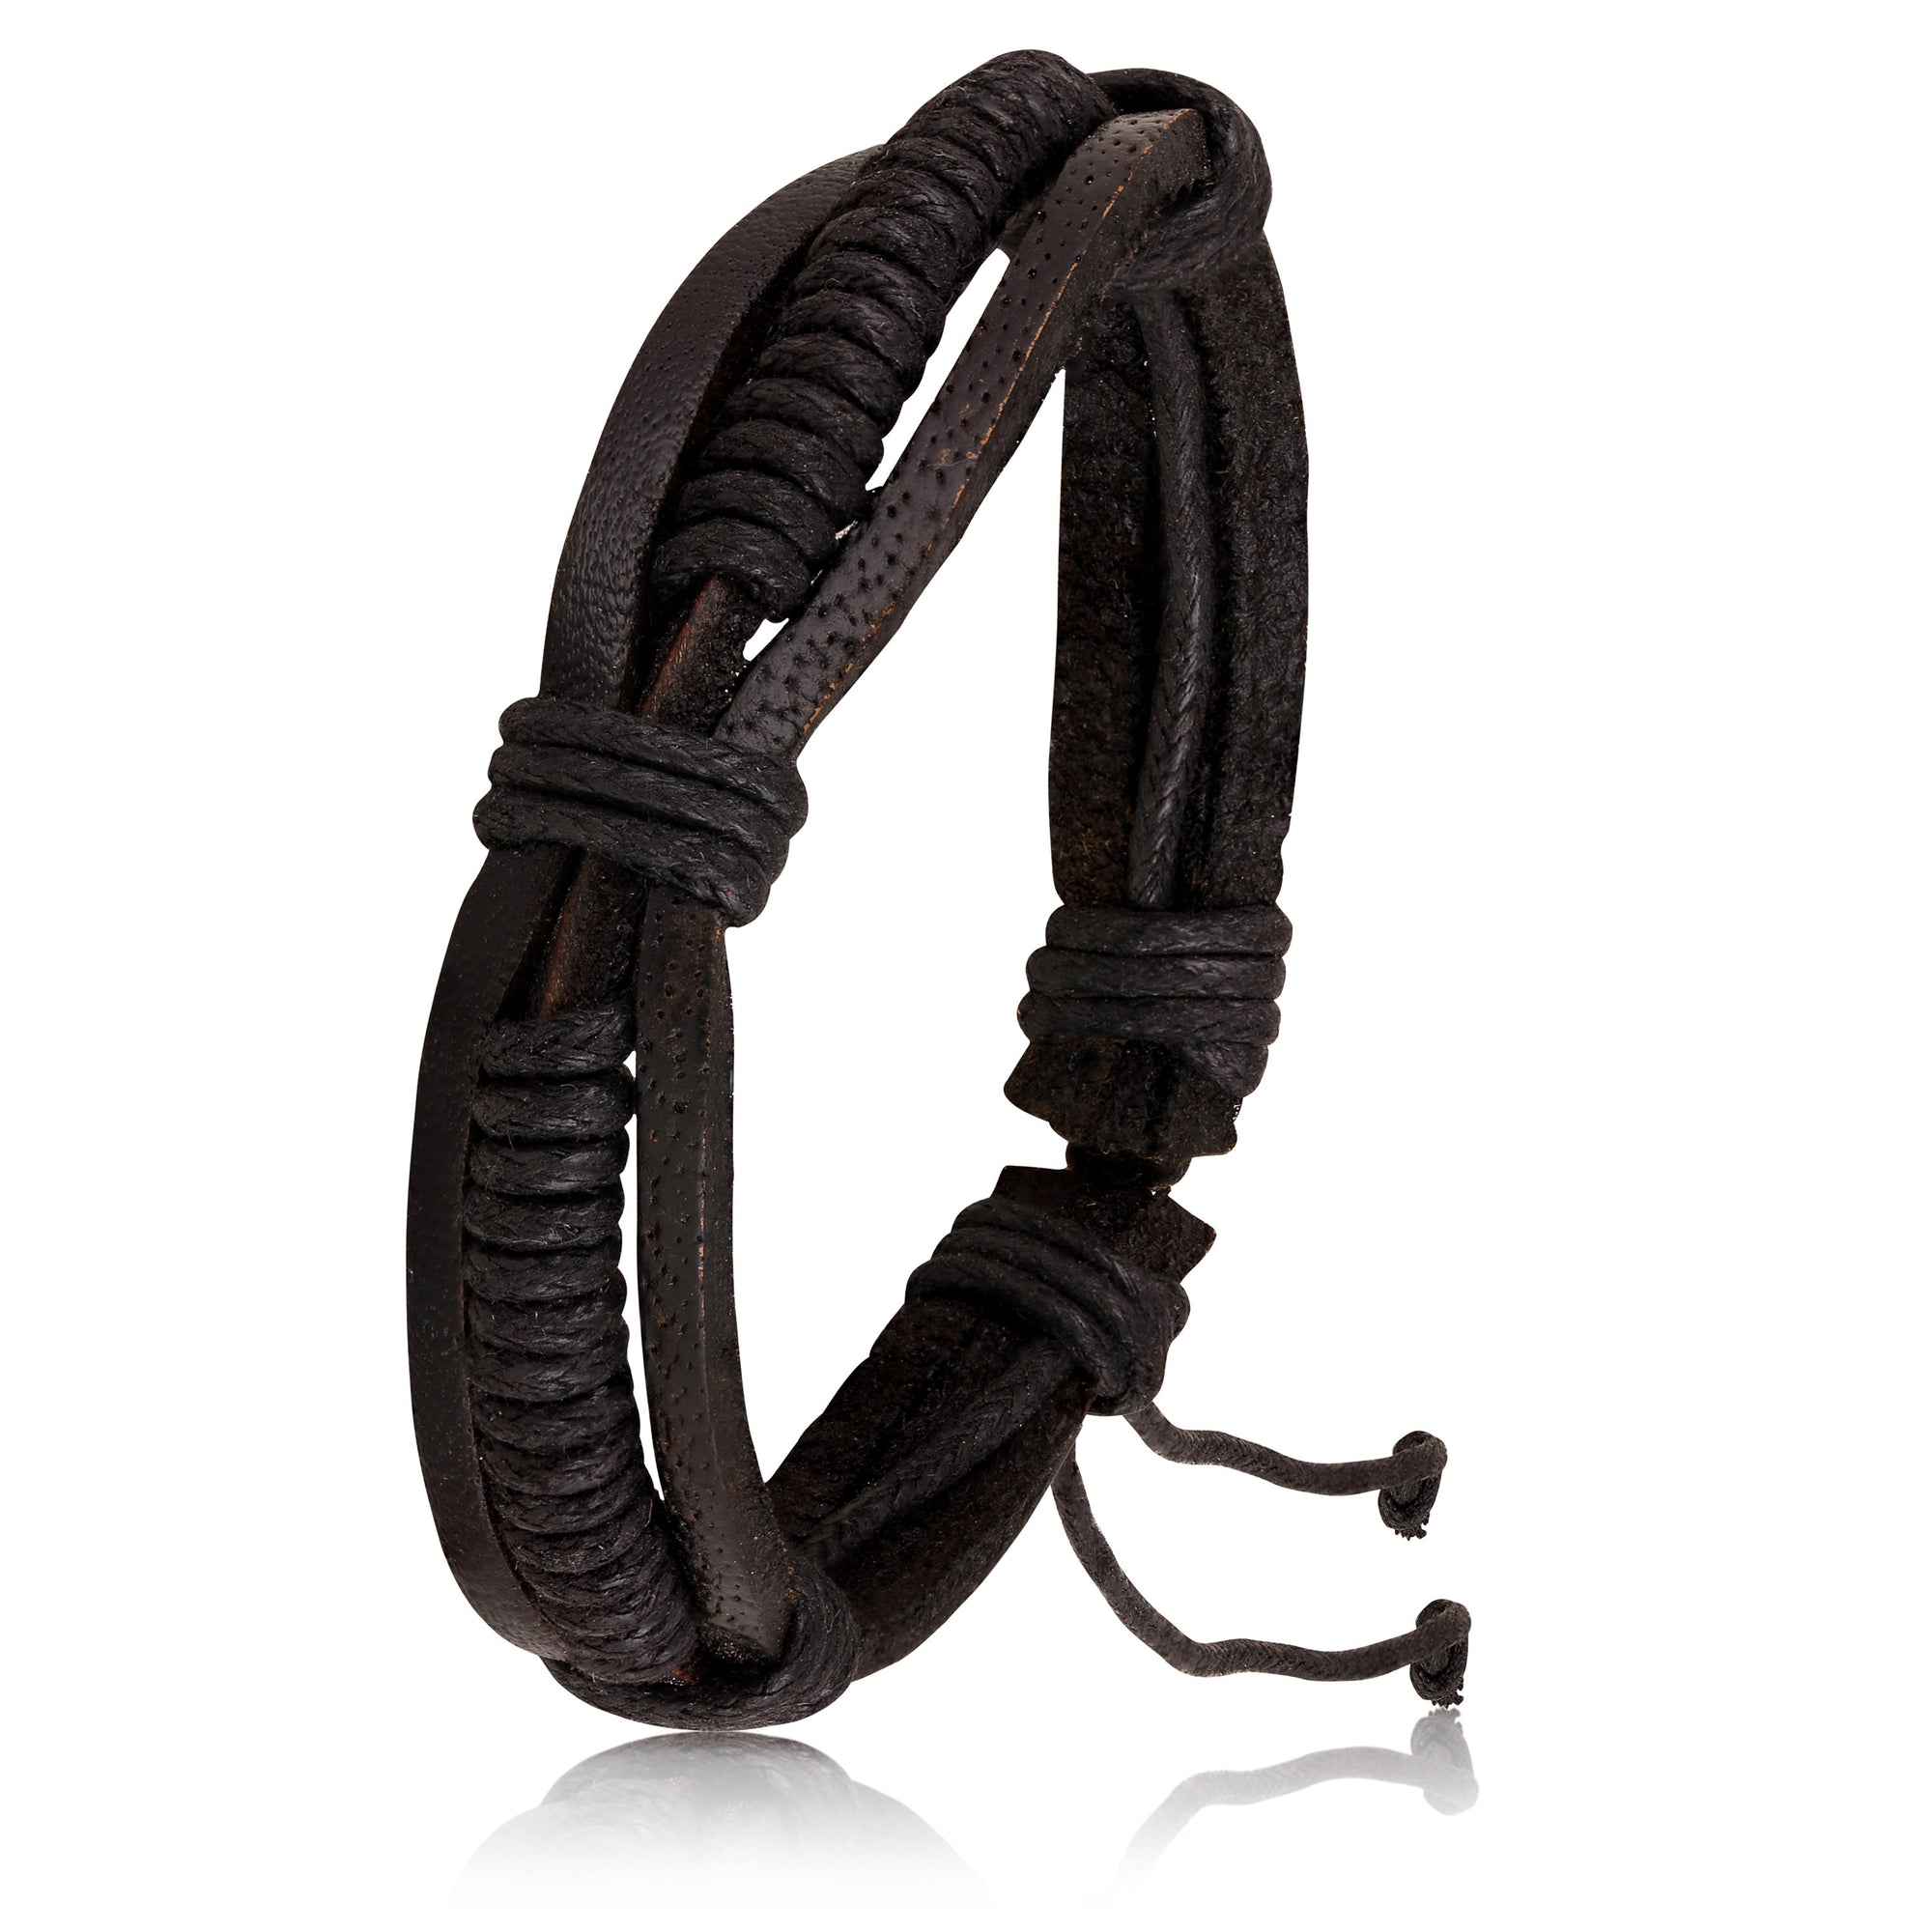 Asmitta Jewellery Leather Bracelet  -MBR292